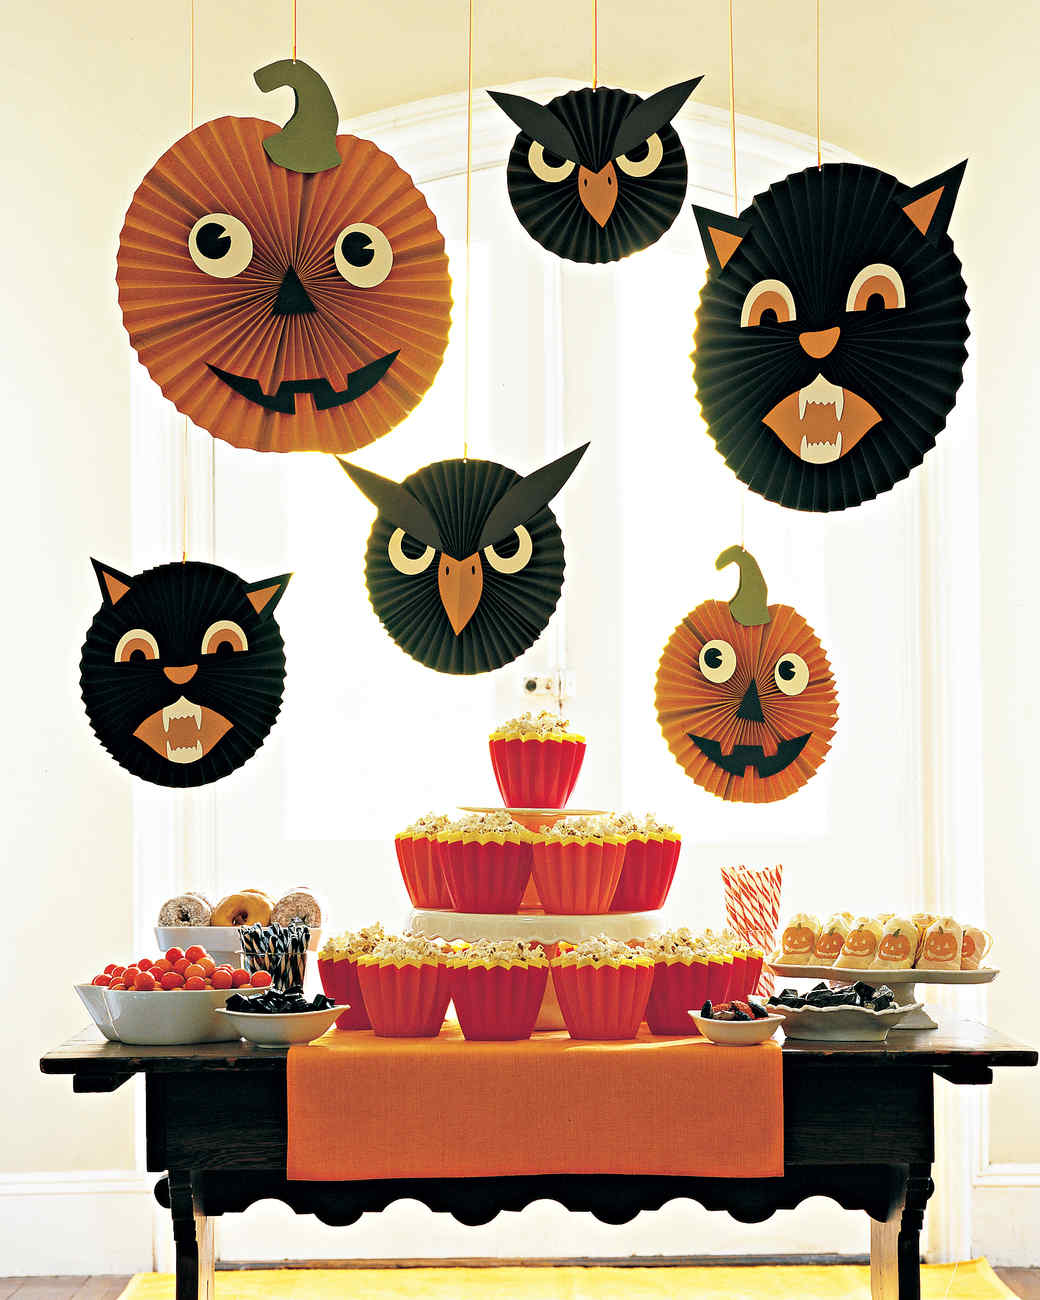 Uncategorized Halloween Crafts For Kids To Make kids halloween crafts martha stewart hang ups